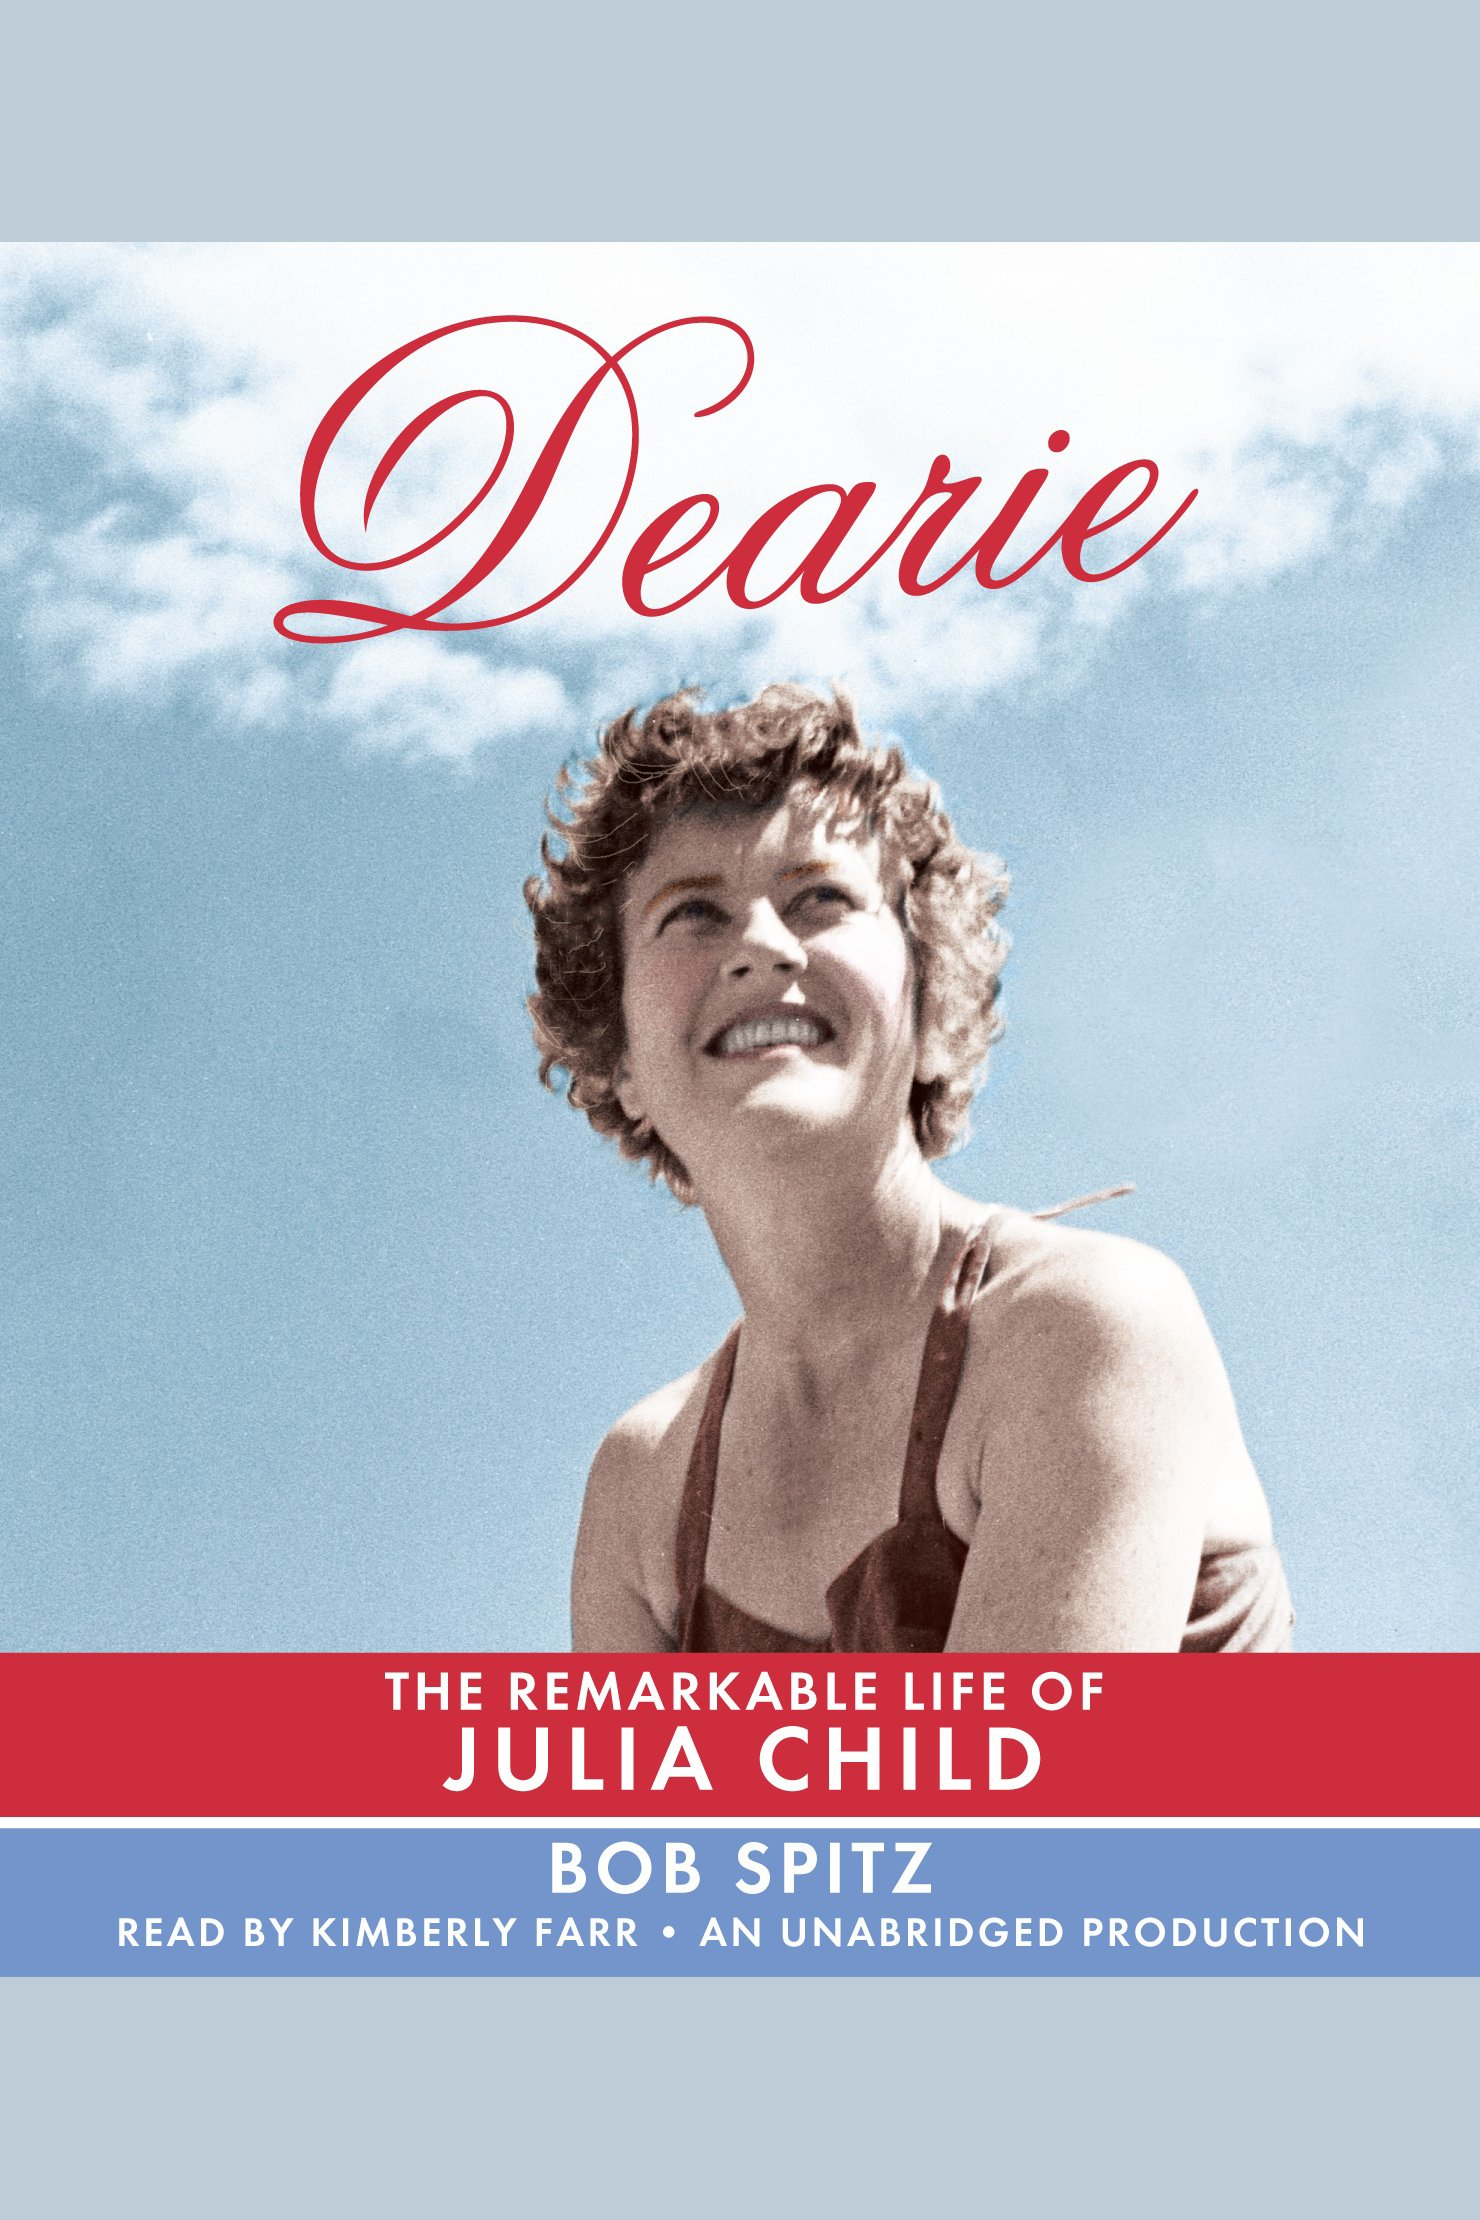 Dearie the remarkable life of Julia Child cover image